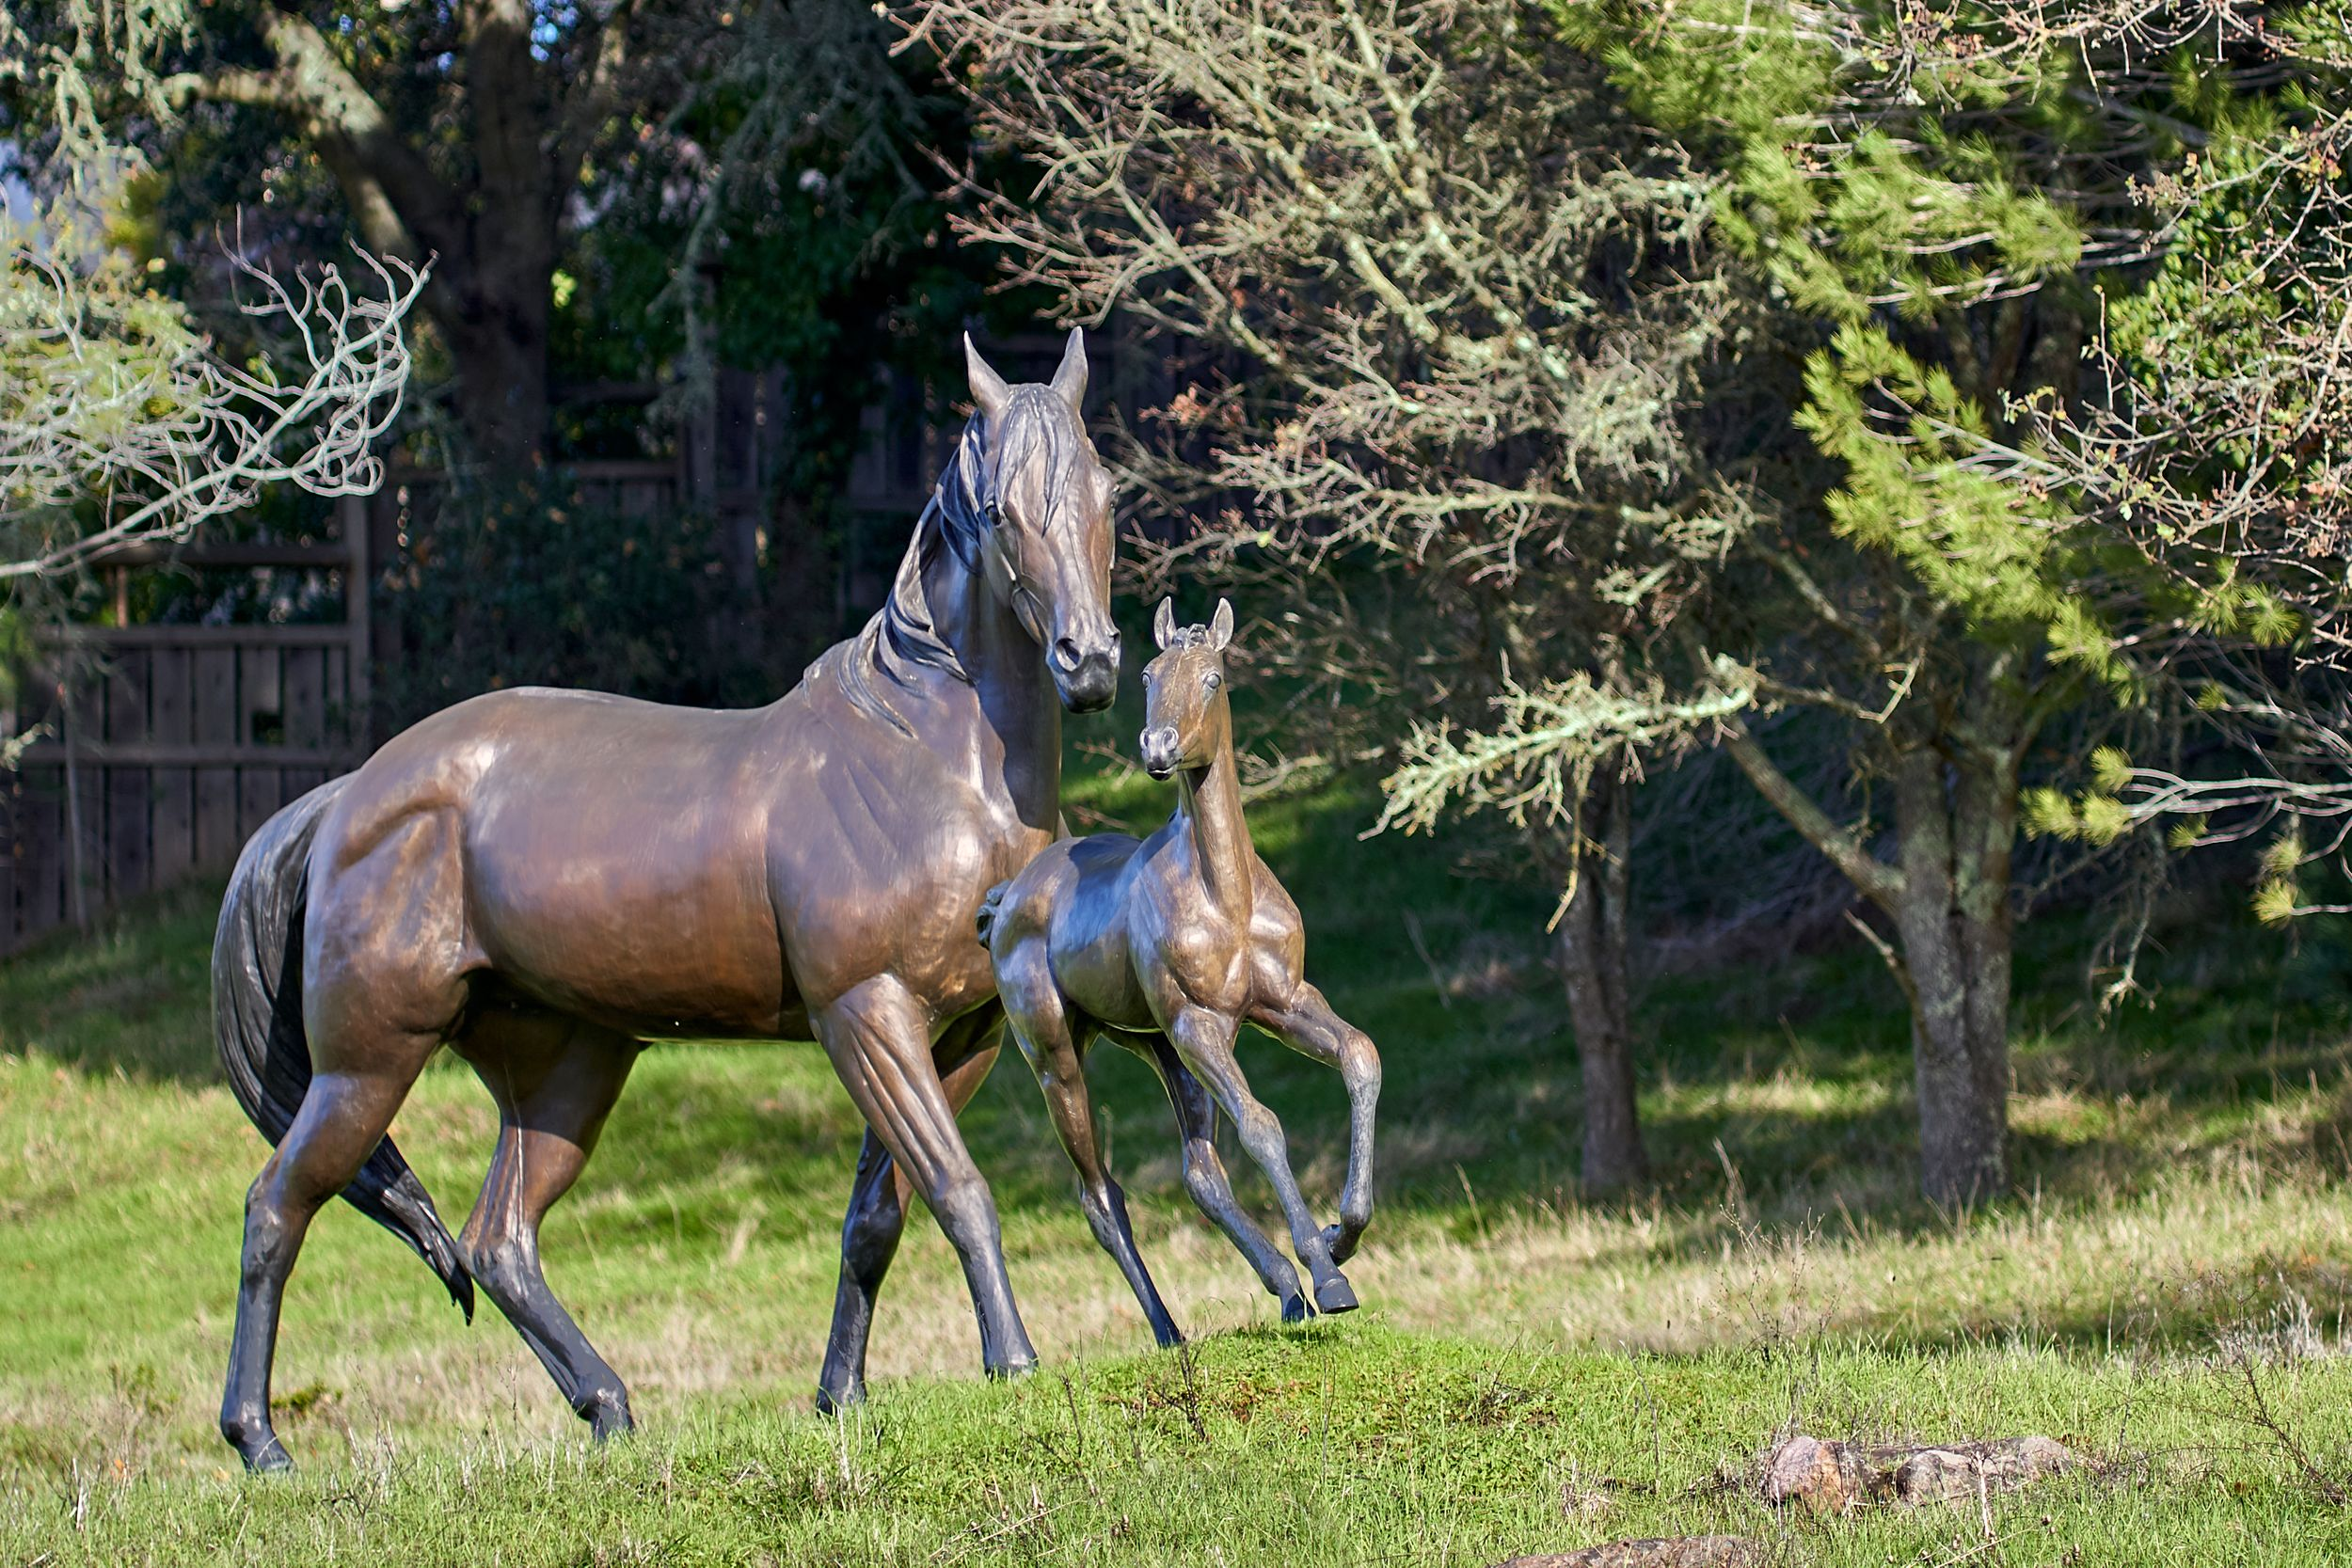 Mare and foal statue in Woodside